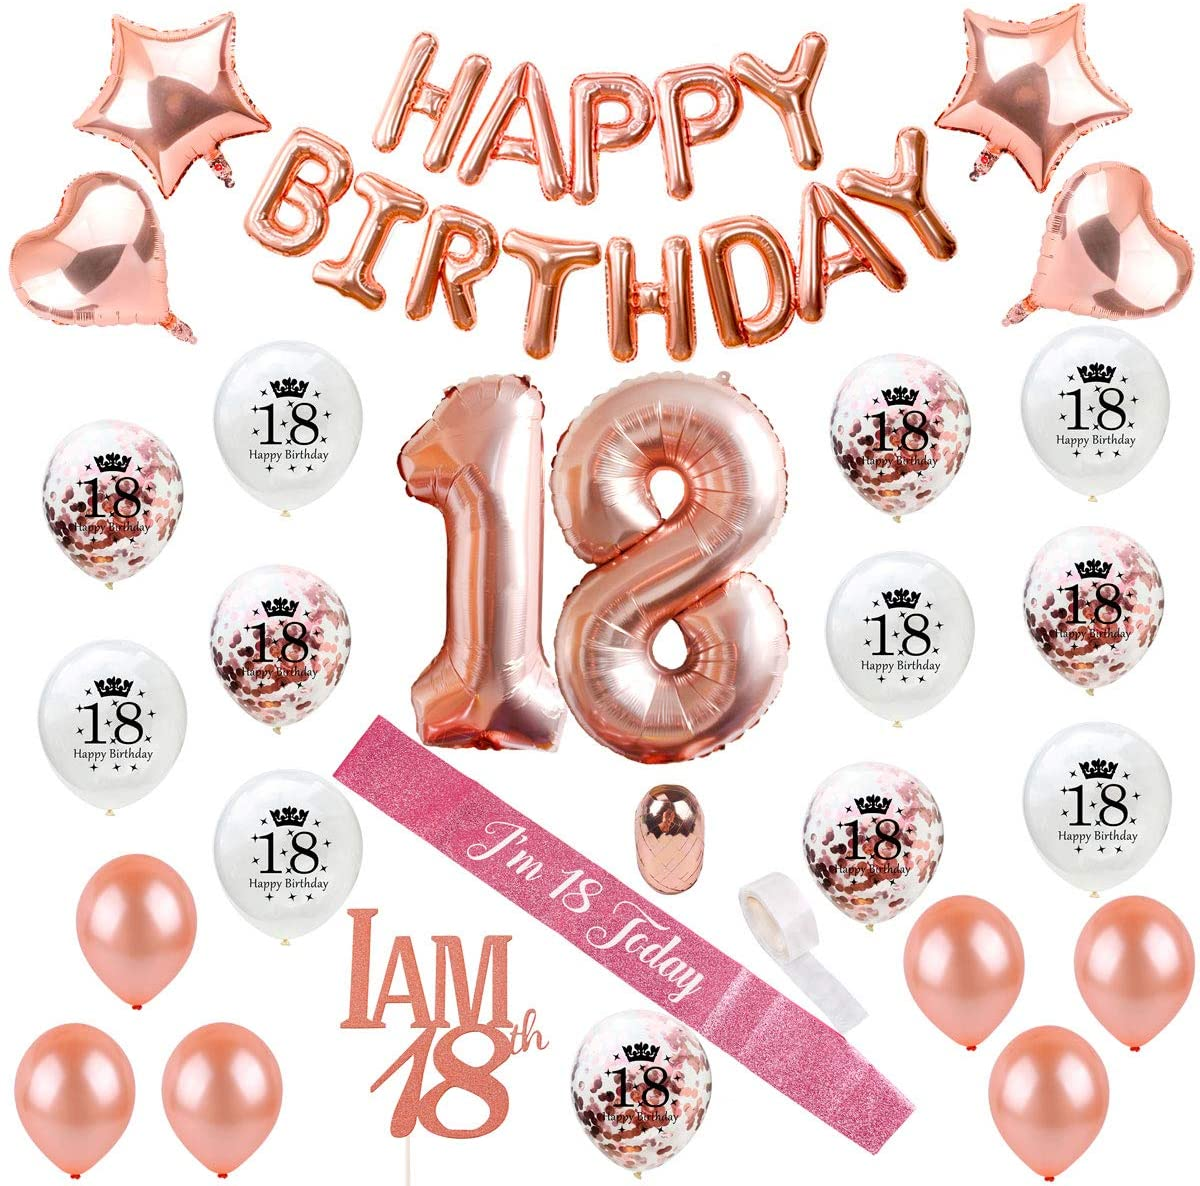 18th Birthday Decorations Party Supplies - Rose Gold 18 Birthday Balloon Numbers, Confetti Latex Balloons, 18 Cake Topper, Birthday Sash, Eighteenth Birthday Decoration by QIFU (Rose Gold Balloons 18)